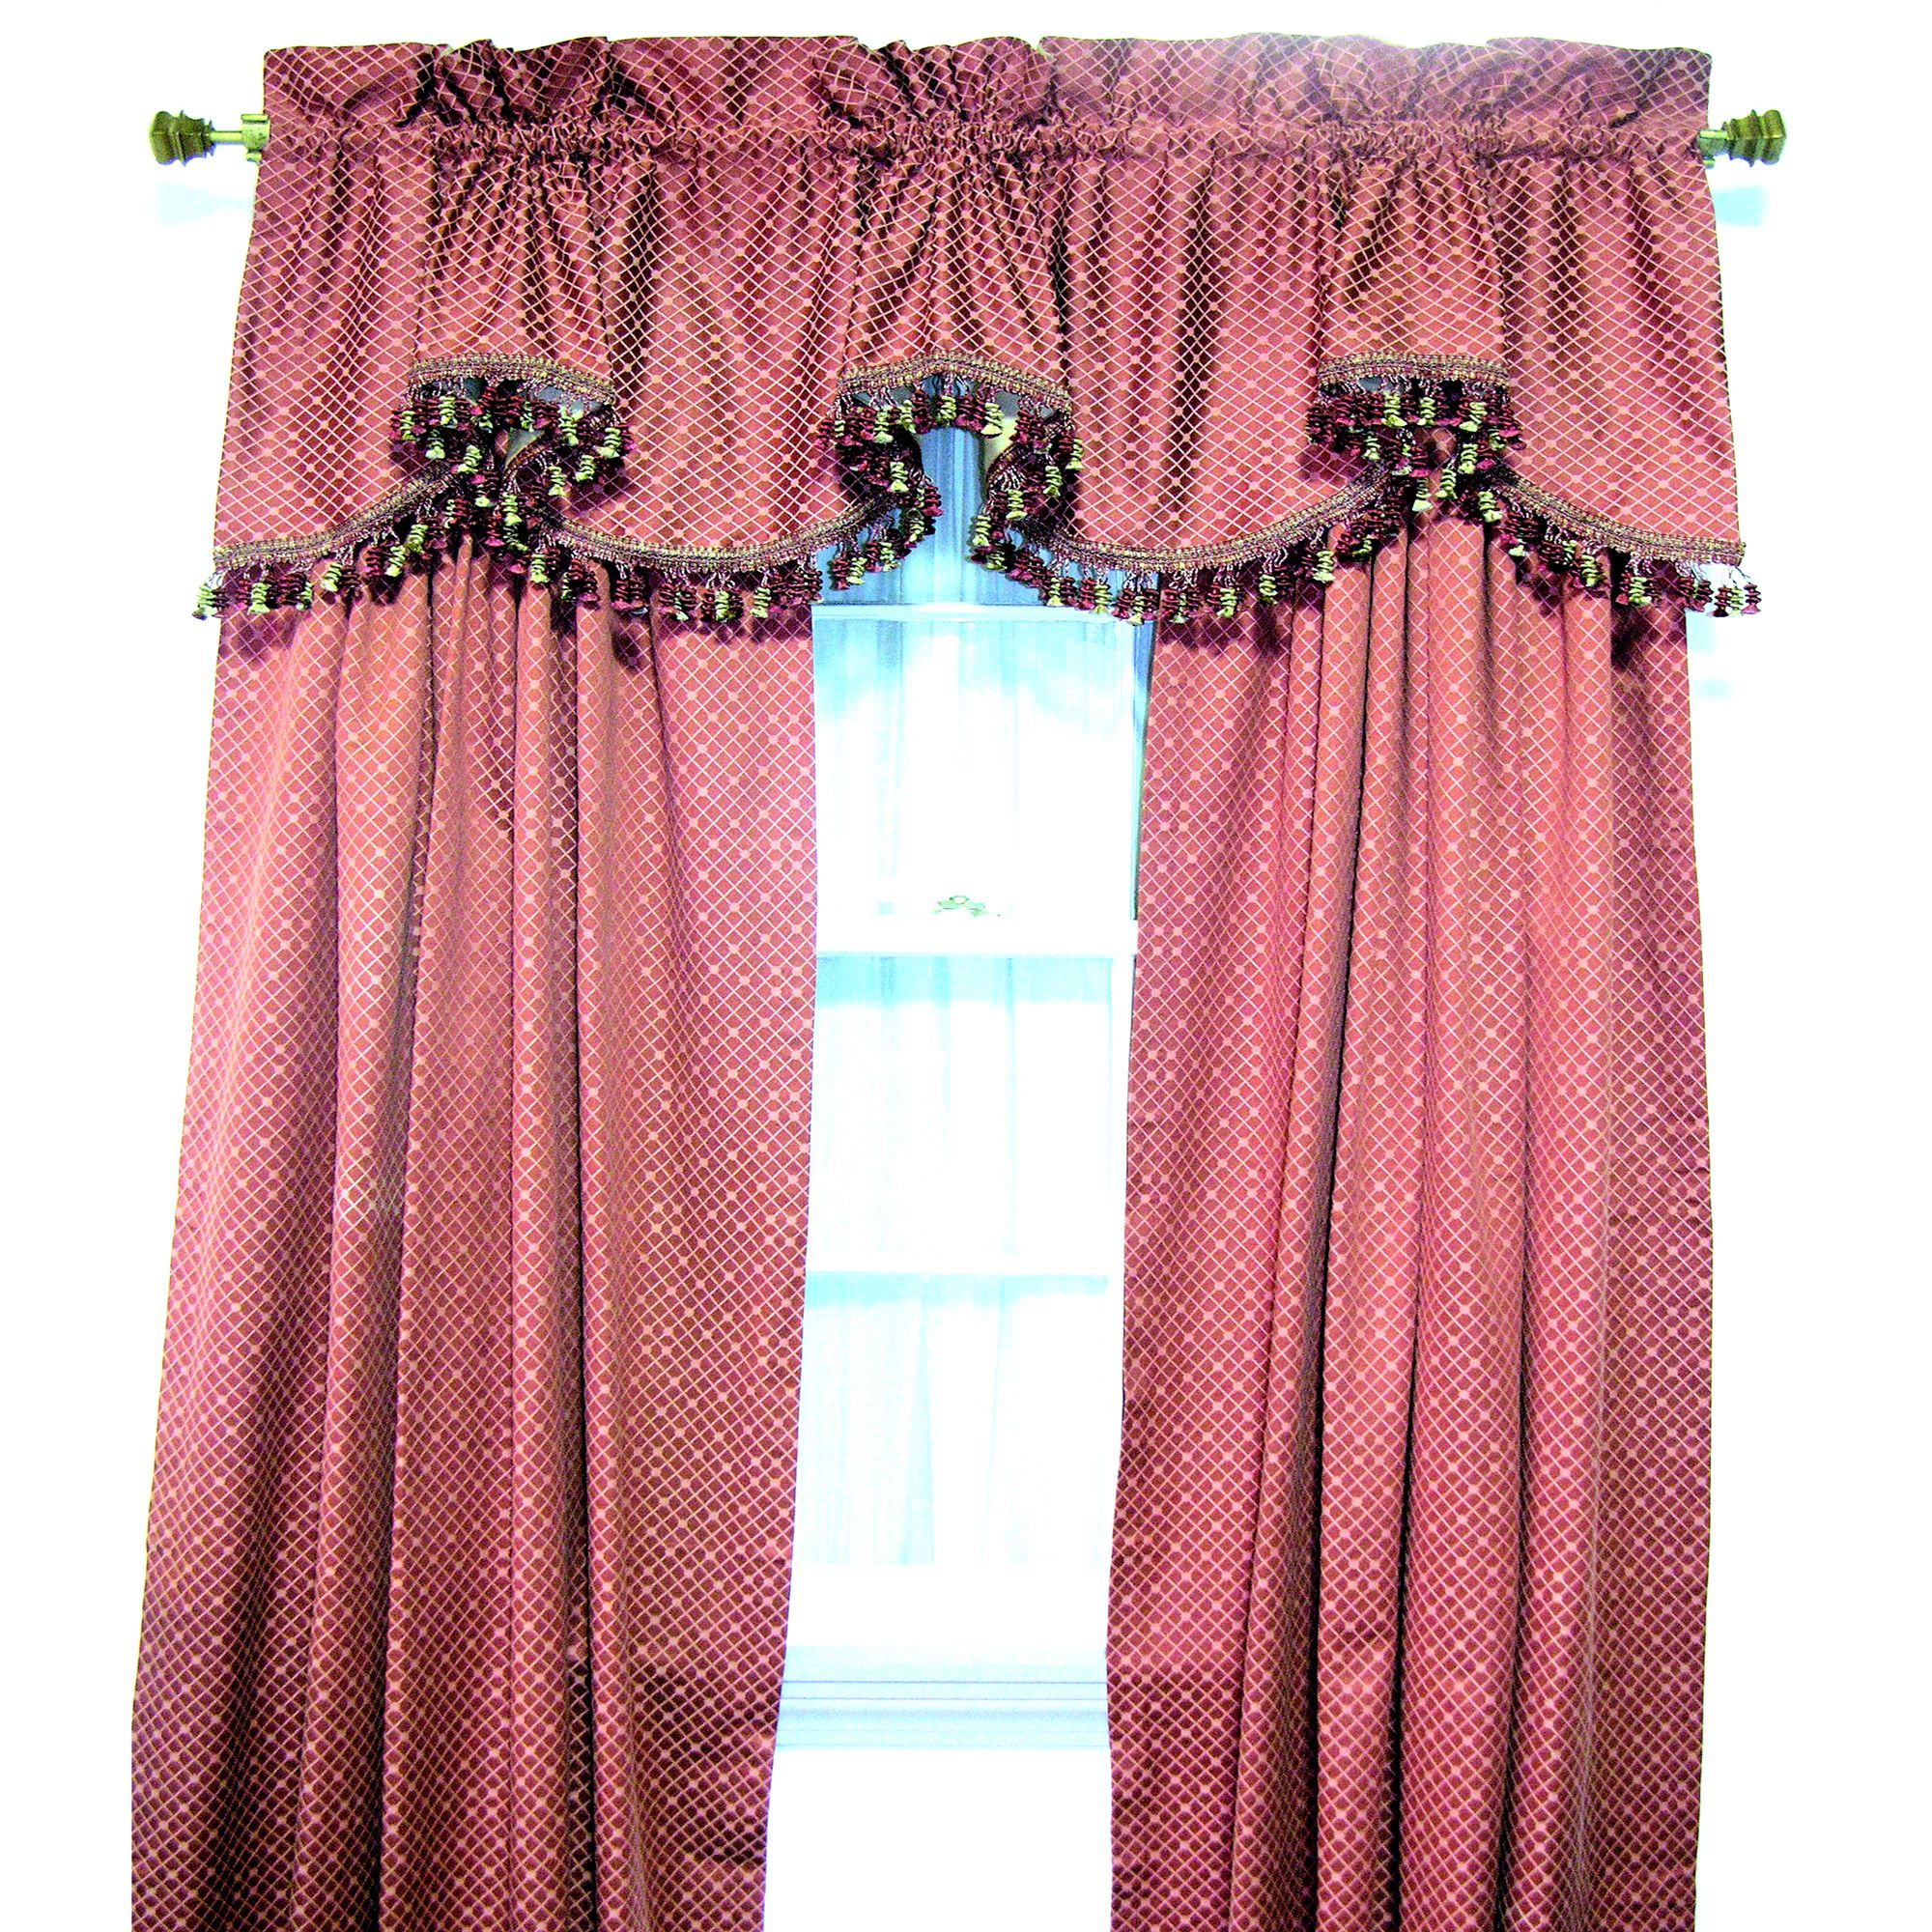 Delizia Window Tailored Valance, 75 X 16